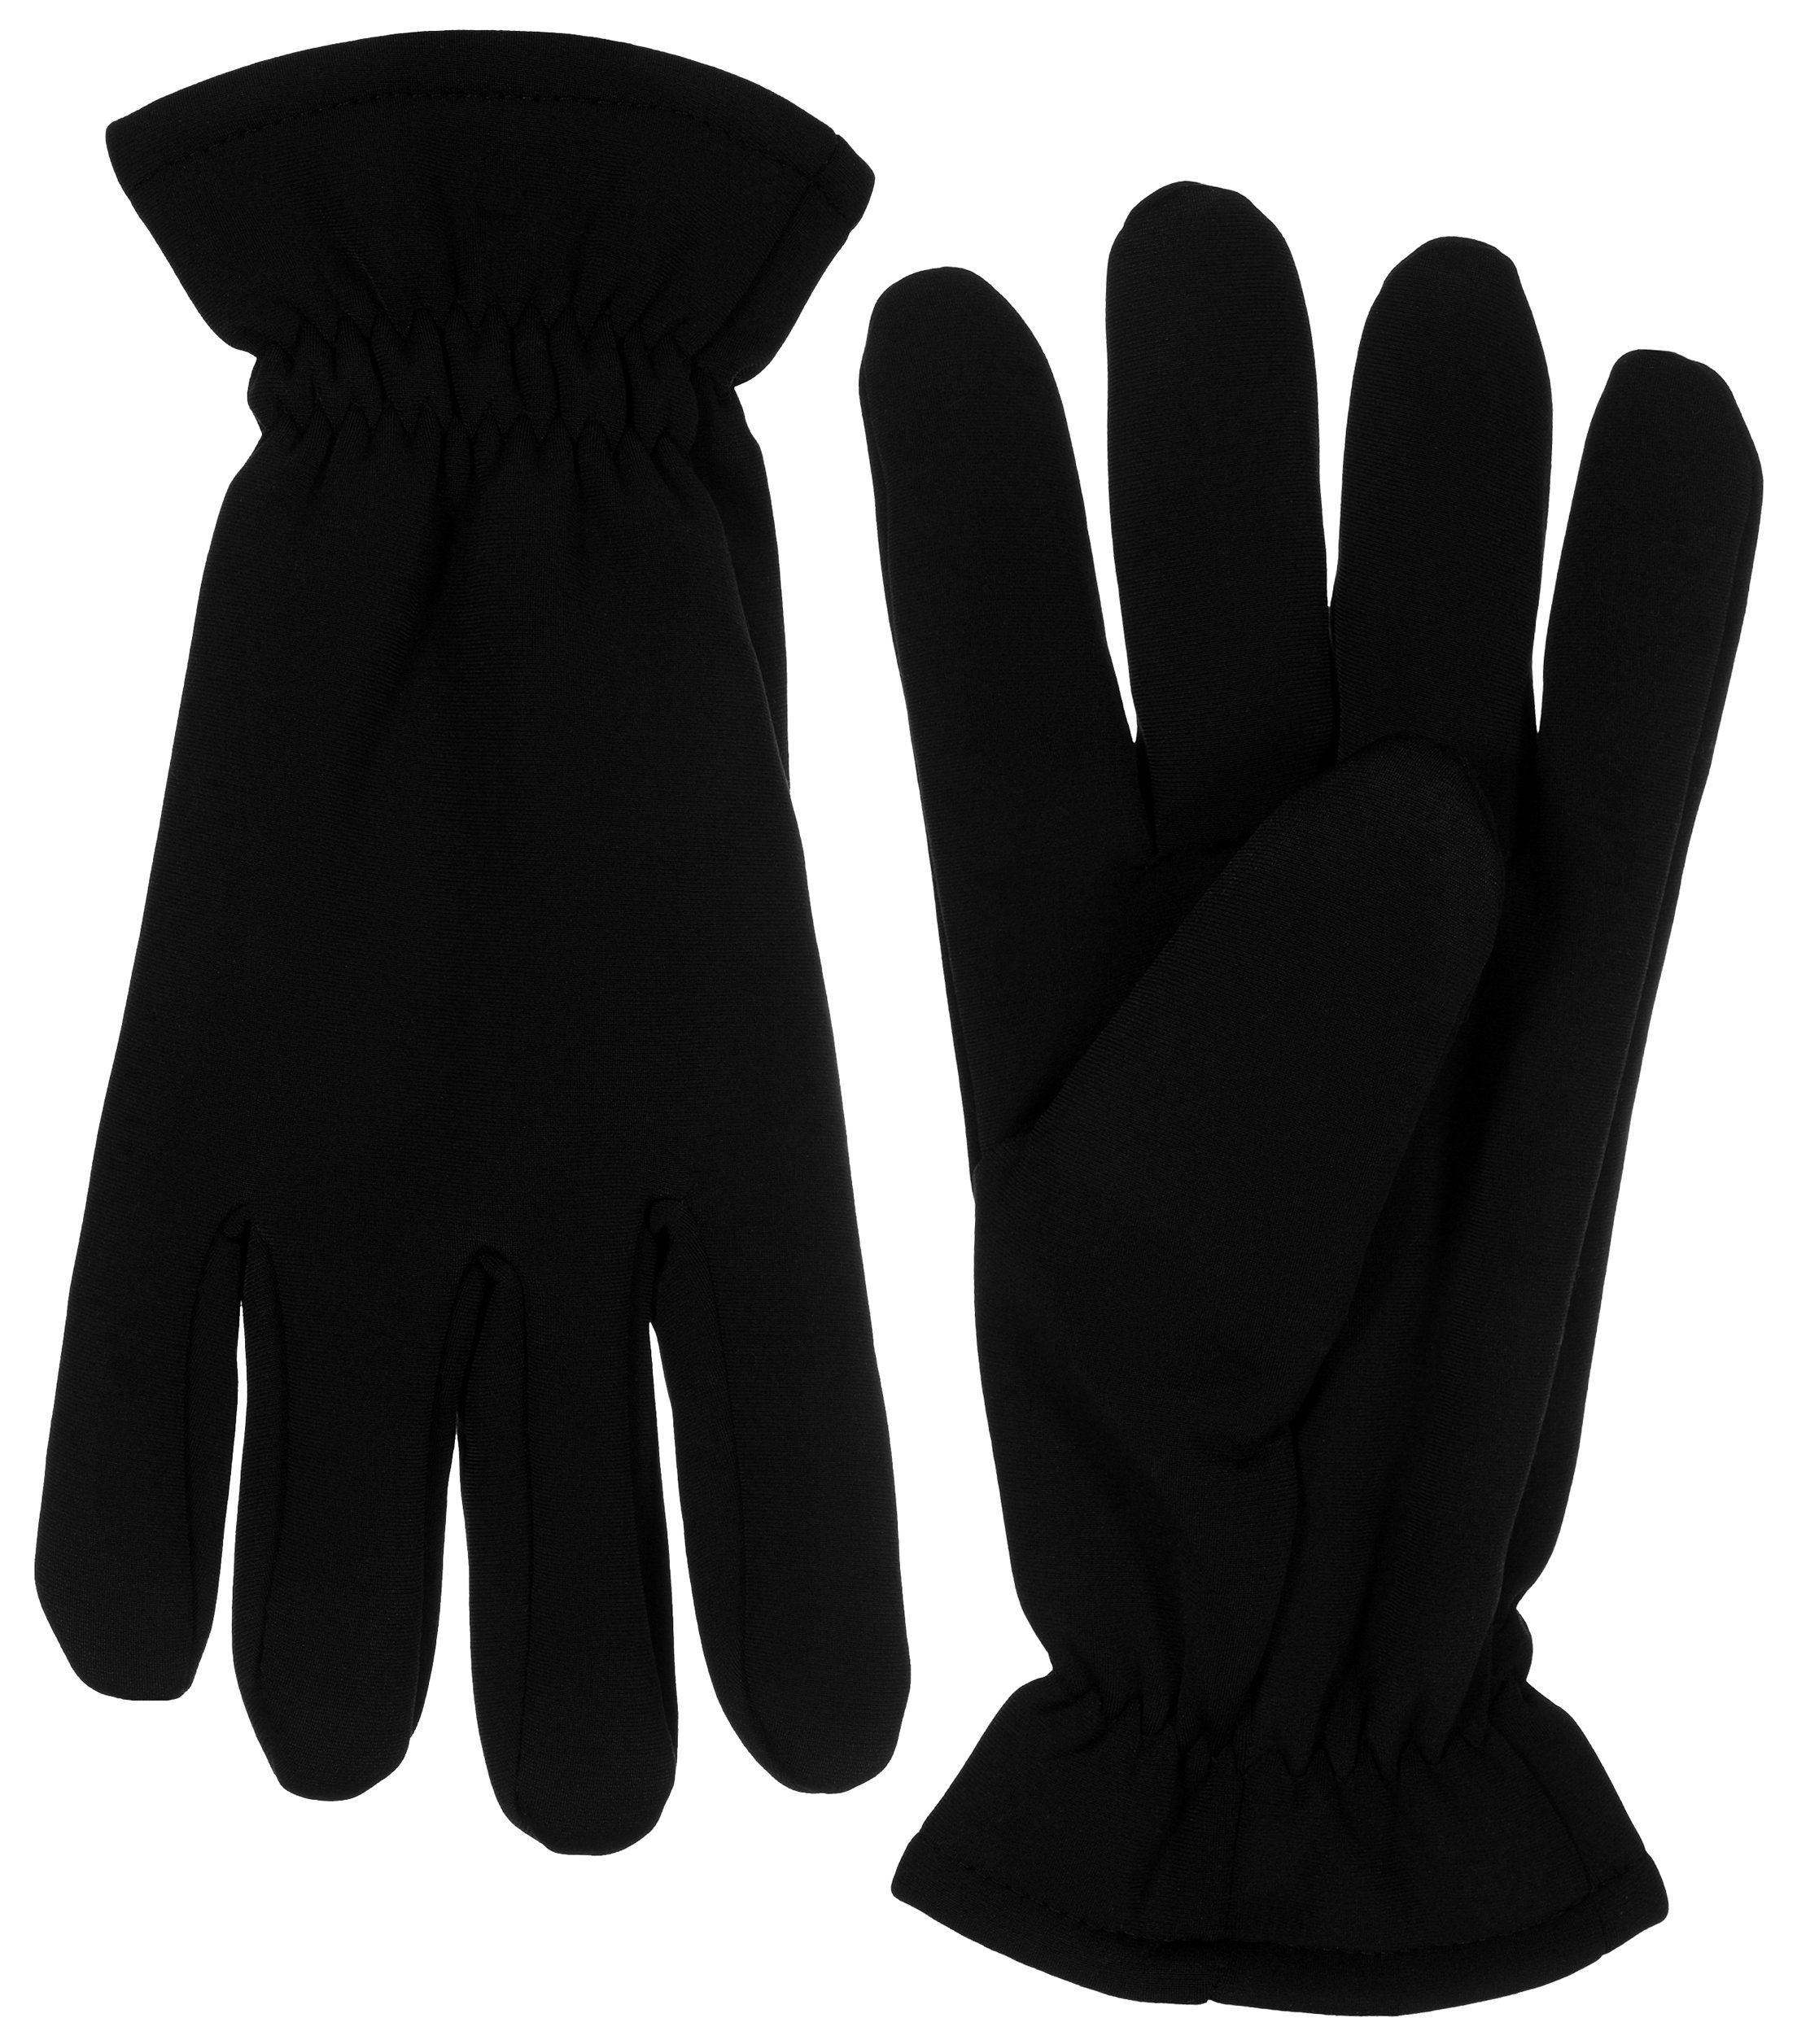 Polar Extreme Men's Insulated Weather Resistant Winter Gloves (Medium-Large)